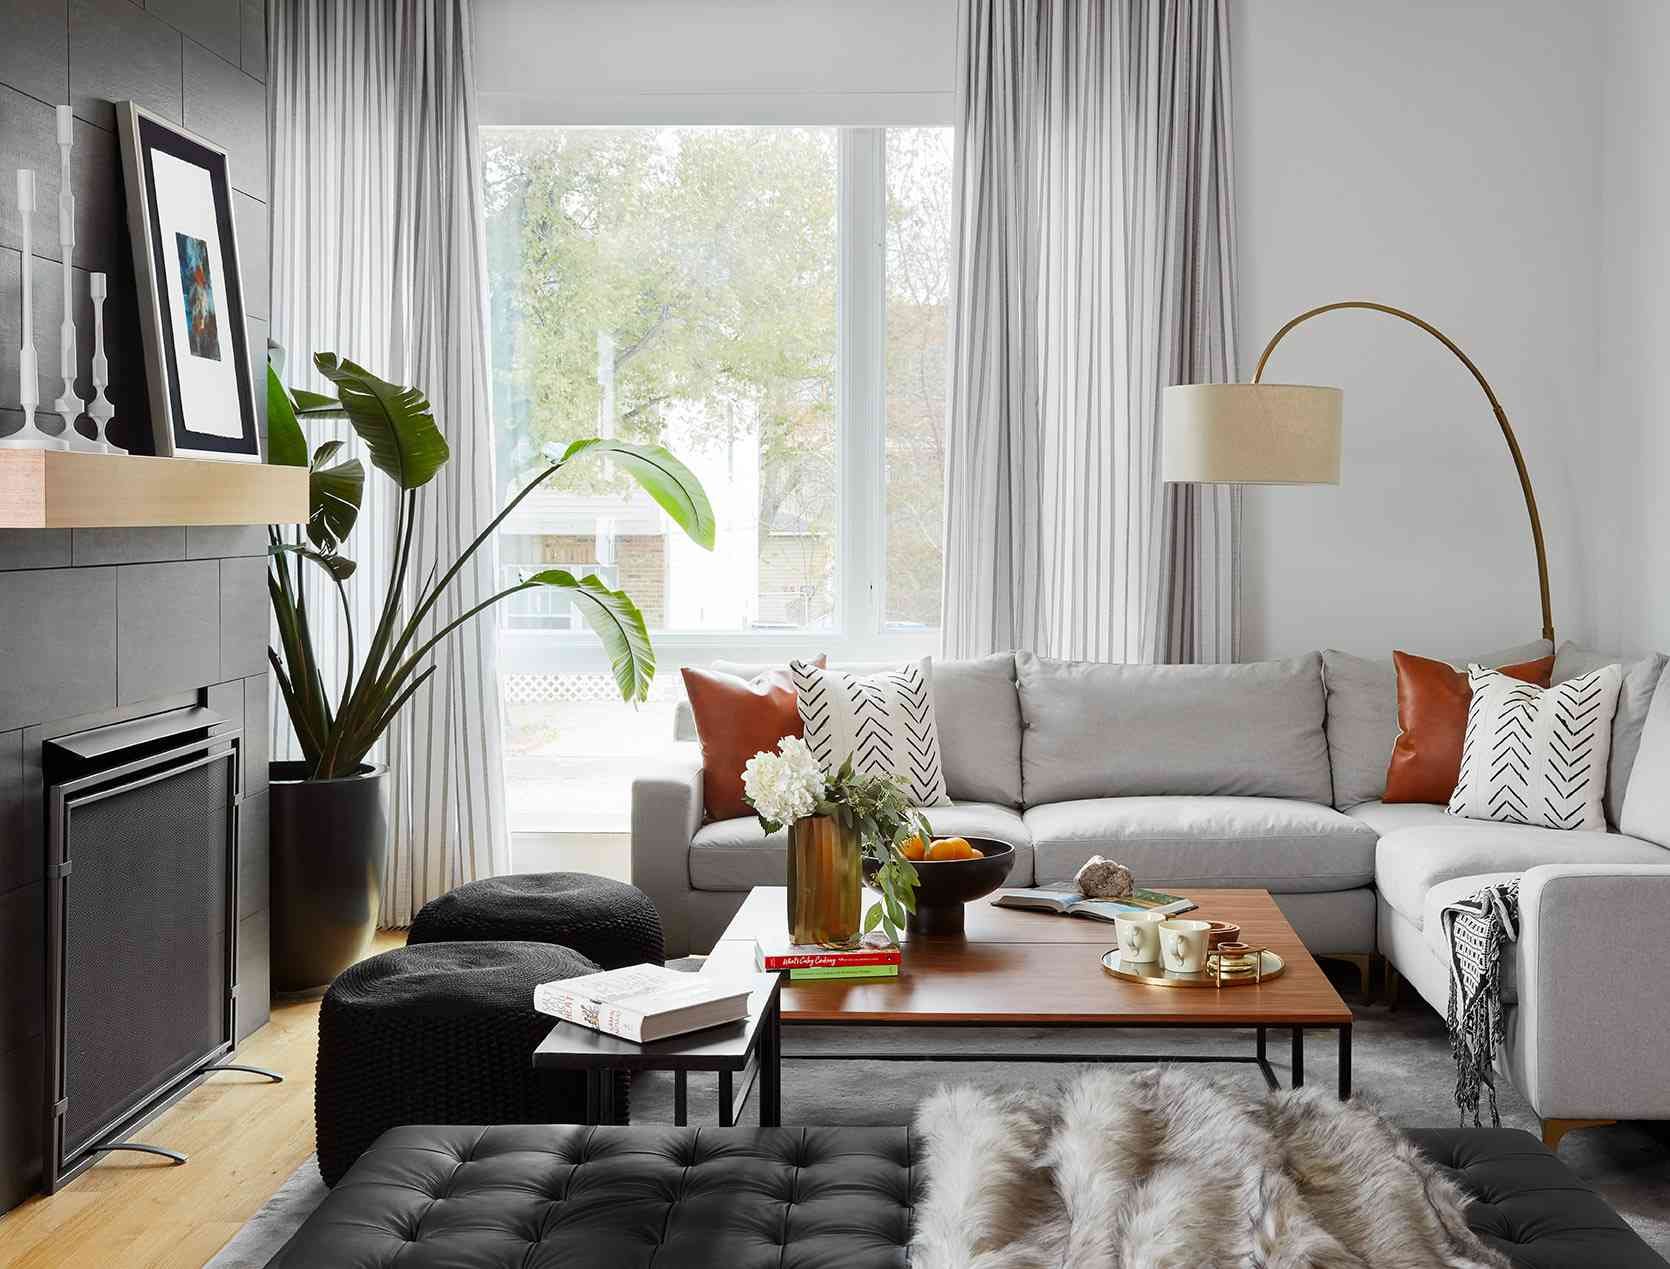 Narrow living room with poufs for extra seating